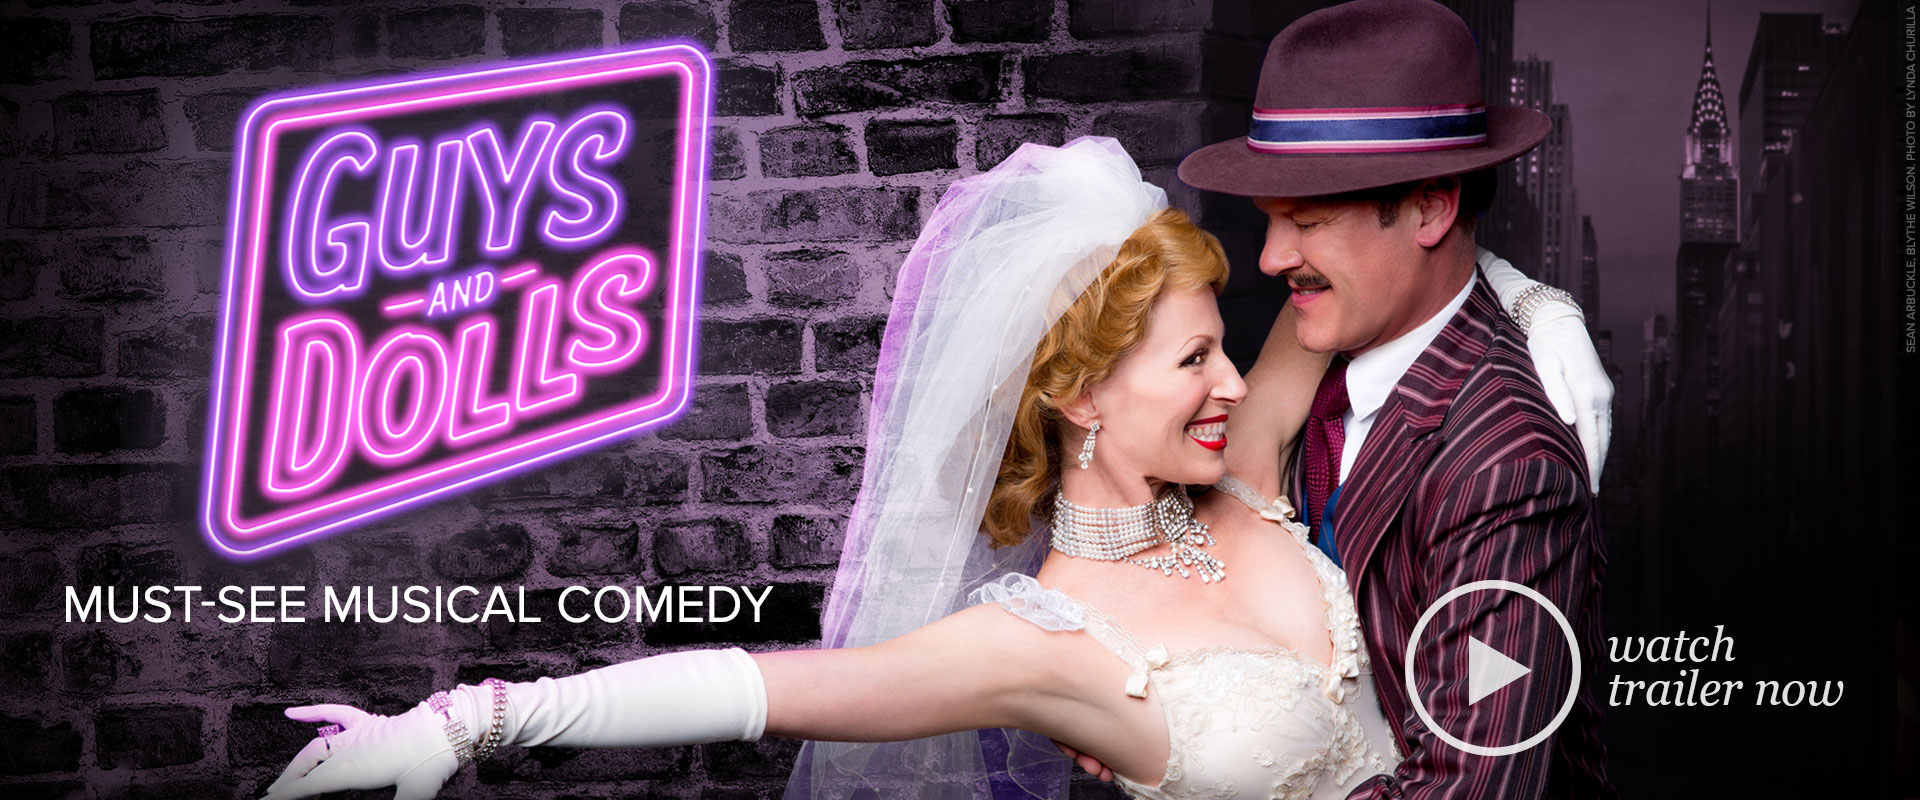 Publicity image from Guys & Dolls featuring Sean Arbuckle and Blythe Wilson